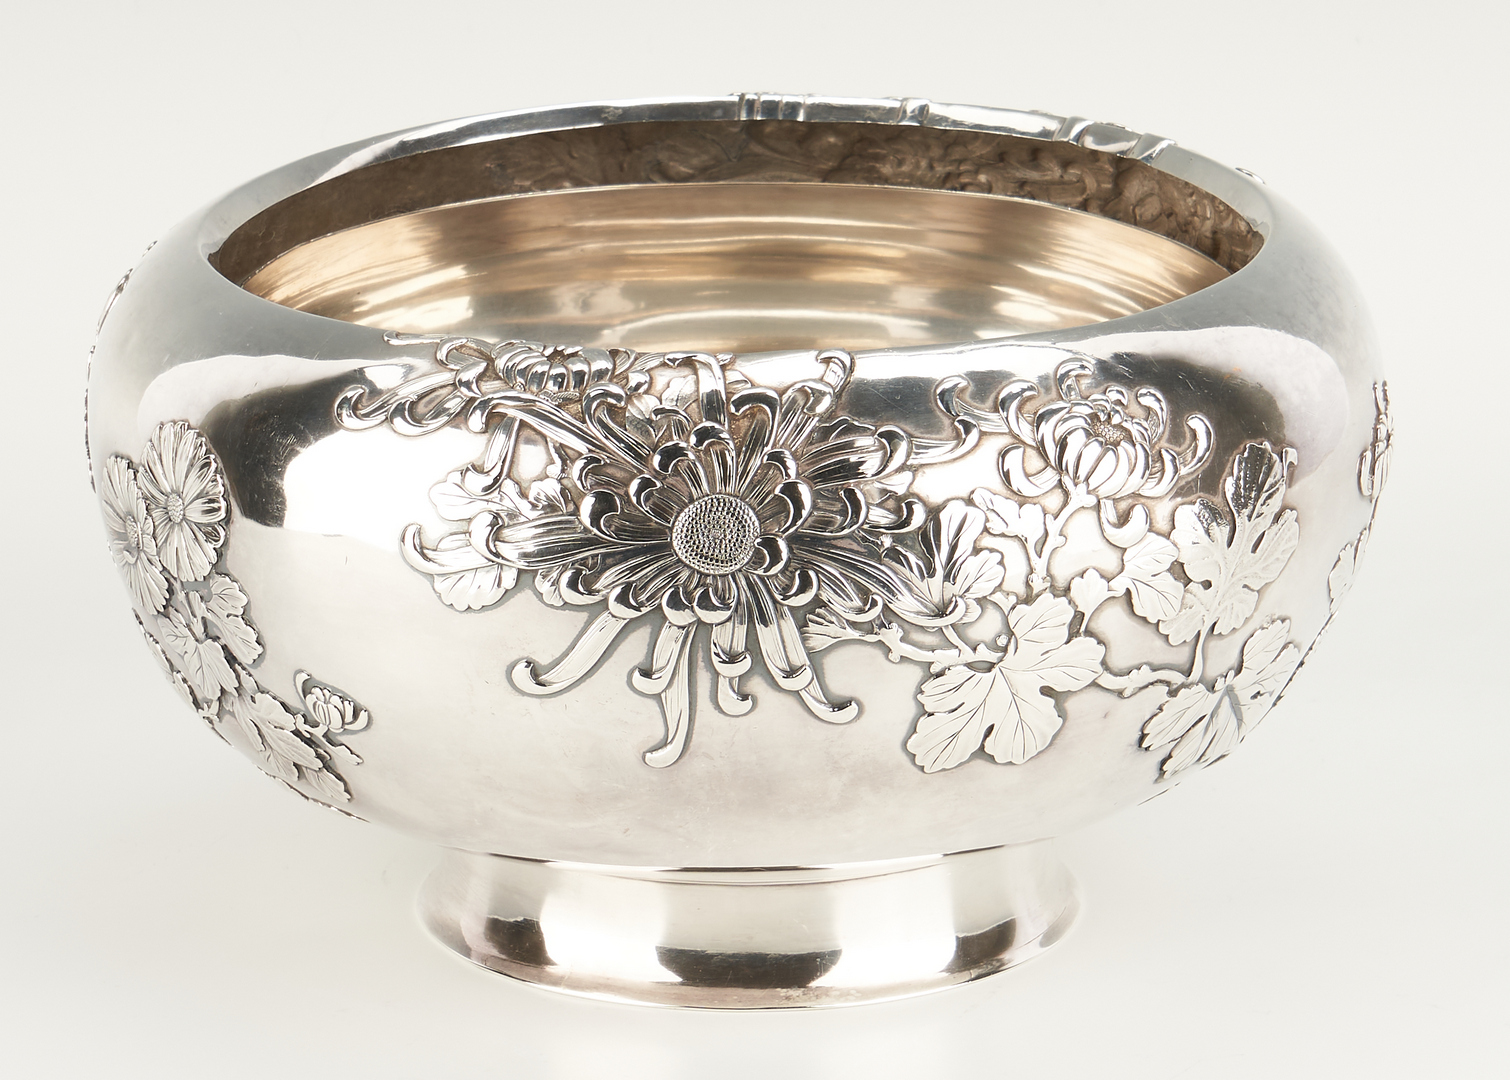 Lot 2: Japanese or Chinese Export Silver Bowl